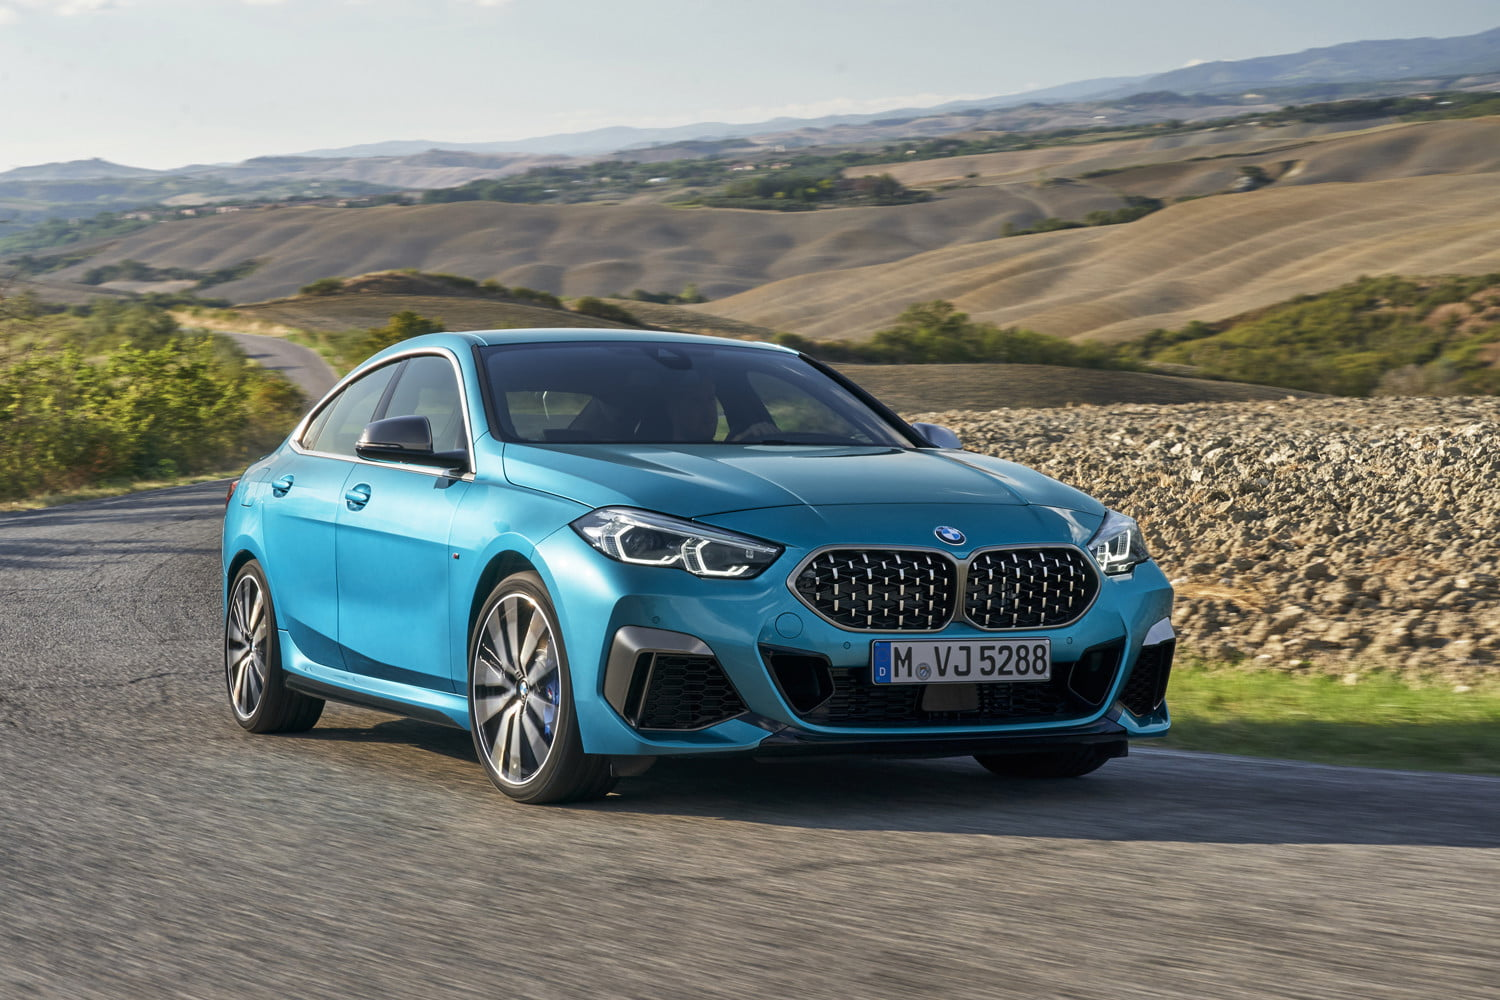 2020 bmw 228i m235i gran coupe unveiled as entry level sedans 2 series gc off 1